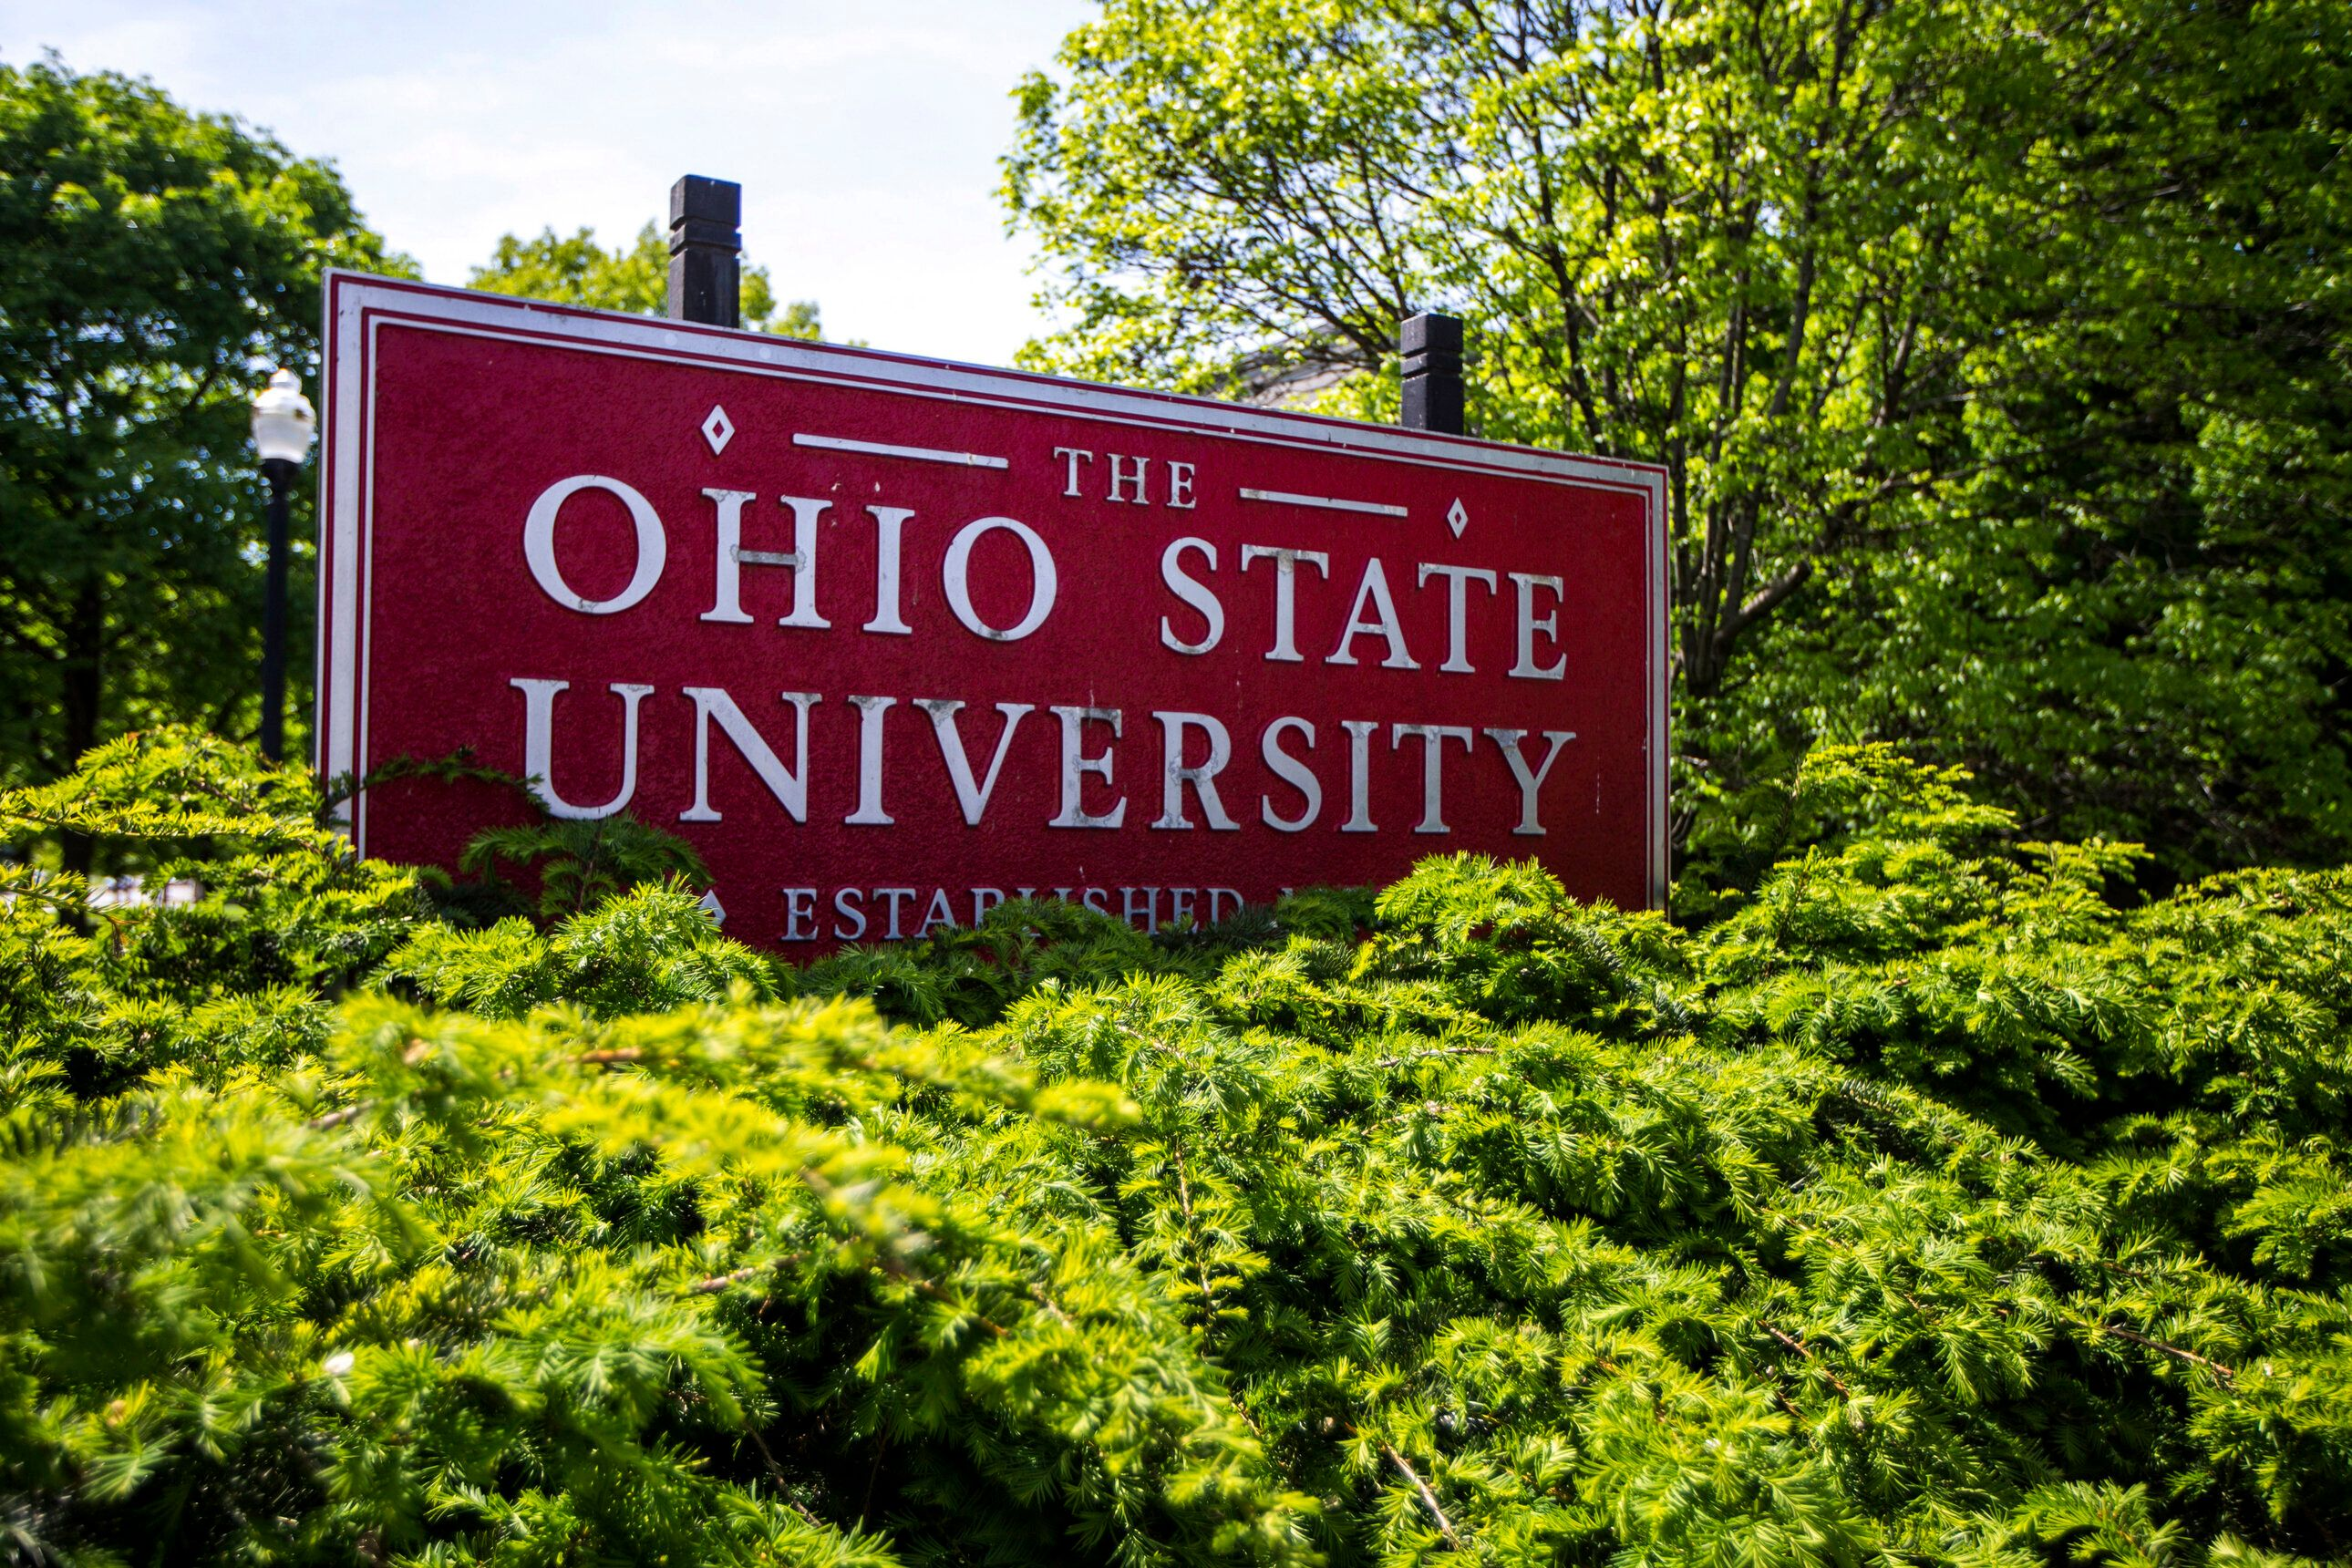 This May 8, 2019 photo shows a sign for Ohio State University in Columbus, Ohio. On Friday, May 17, 2019, the school said at least 177 men were sexually abused by Ohio State team doctor Richard Strauss who died years ago, according to findings from a law firm that investigated the accusations, concluding that school leaders knew at the time. (AP Photo/Angie Wang)